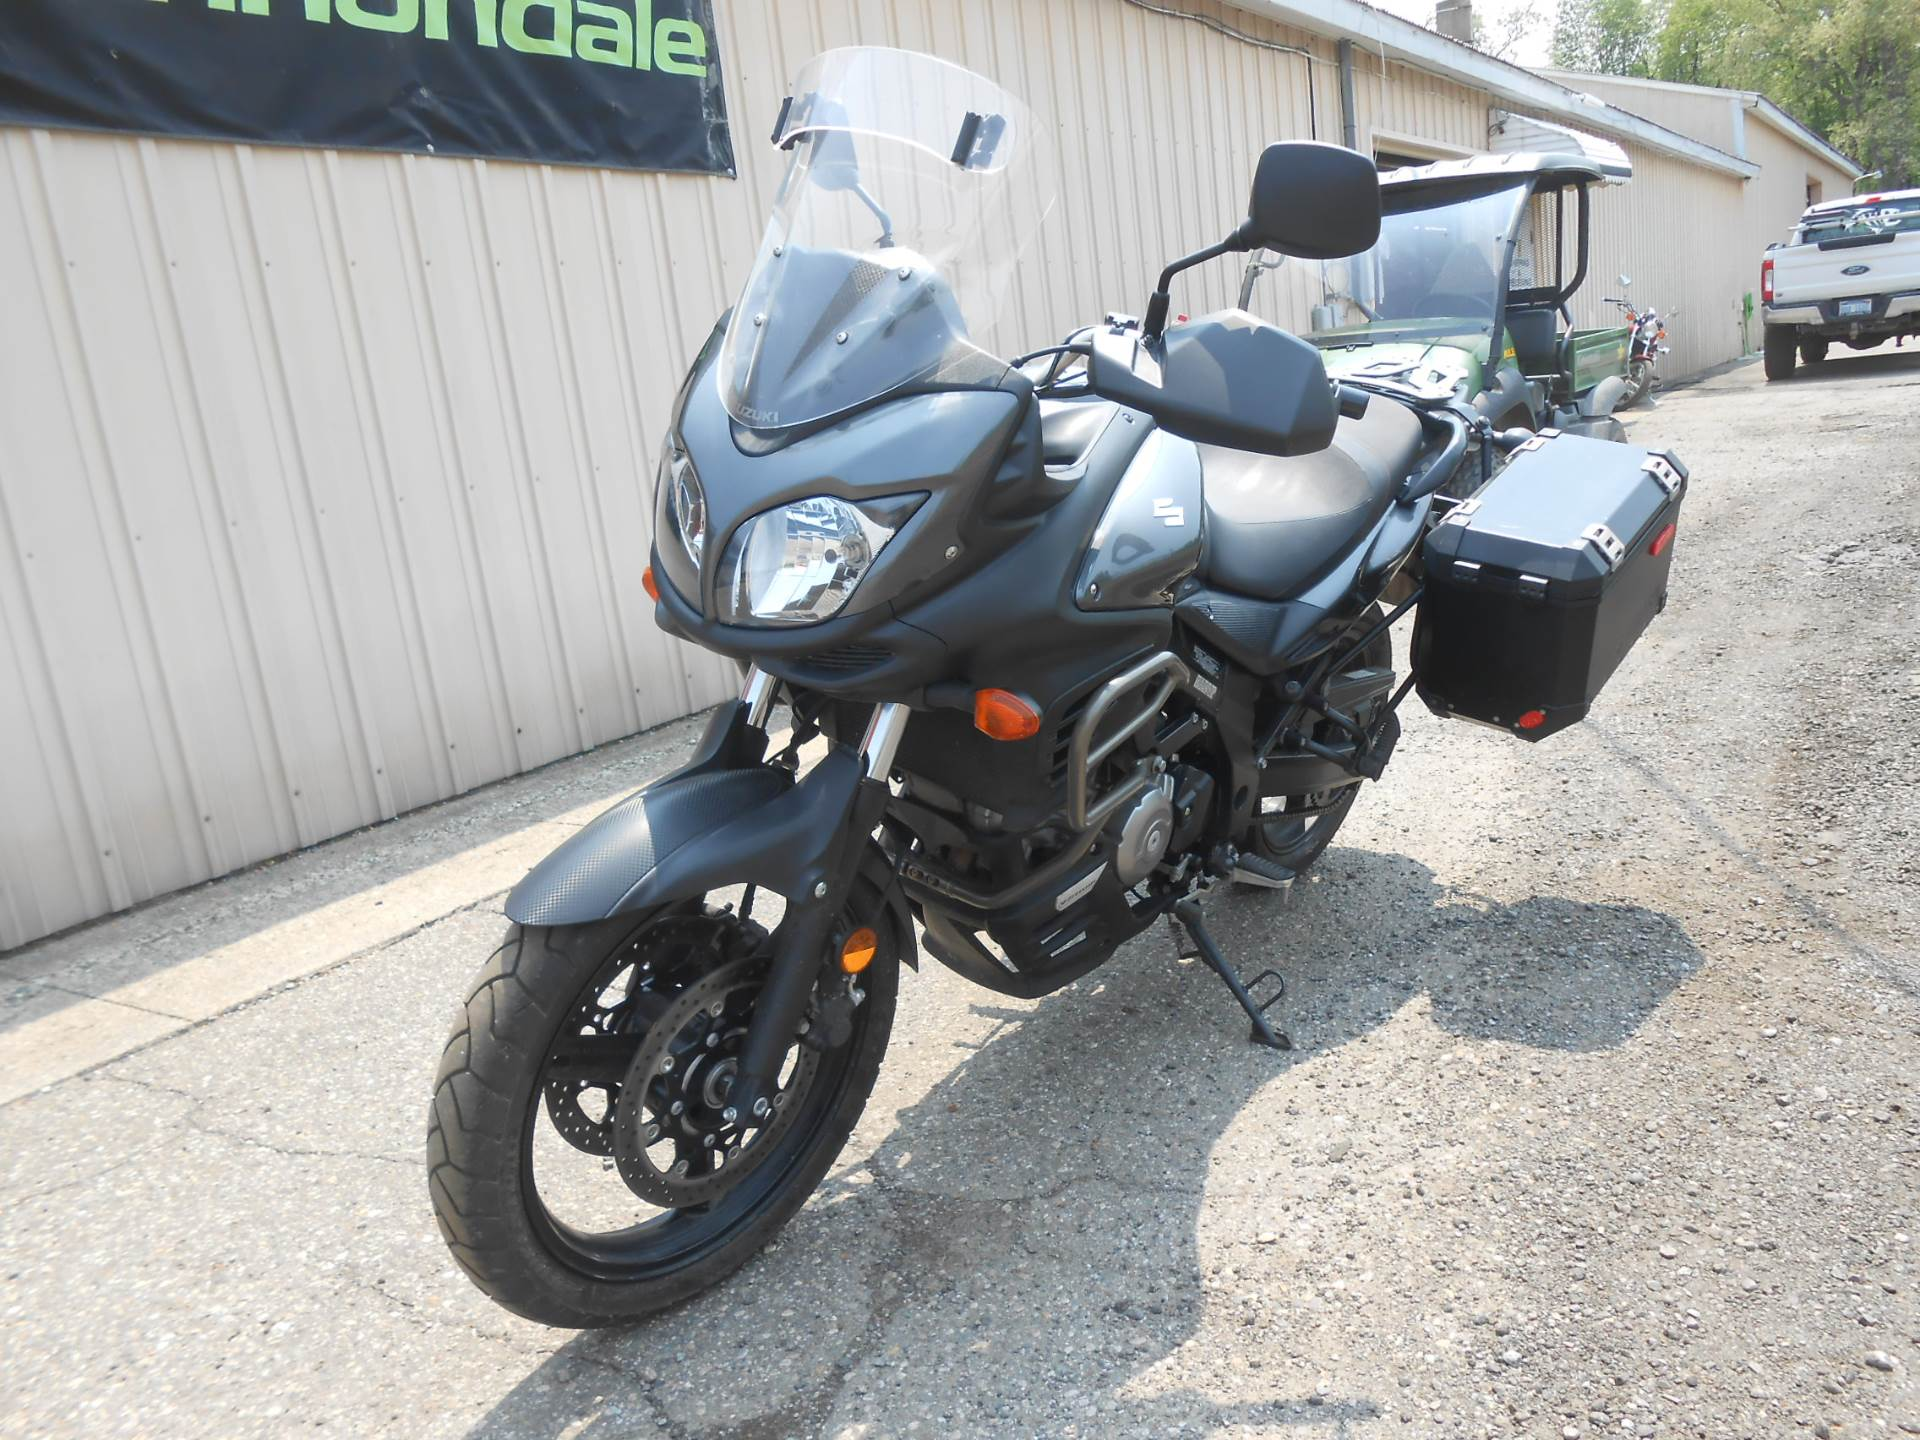 2013 Suzuki V-Strom 650 ABS Adventure in Howell, Michigan - Photo 3